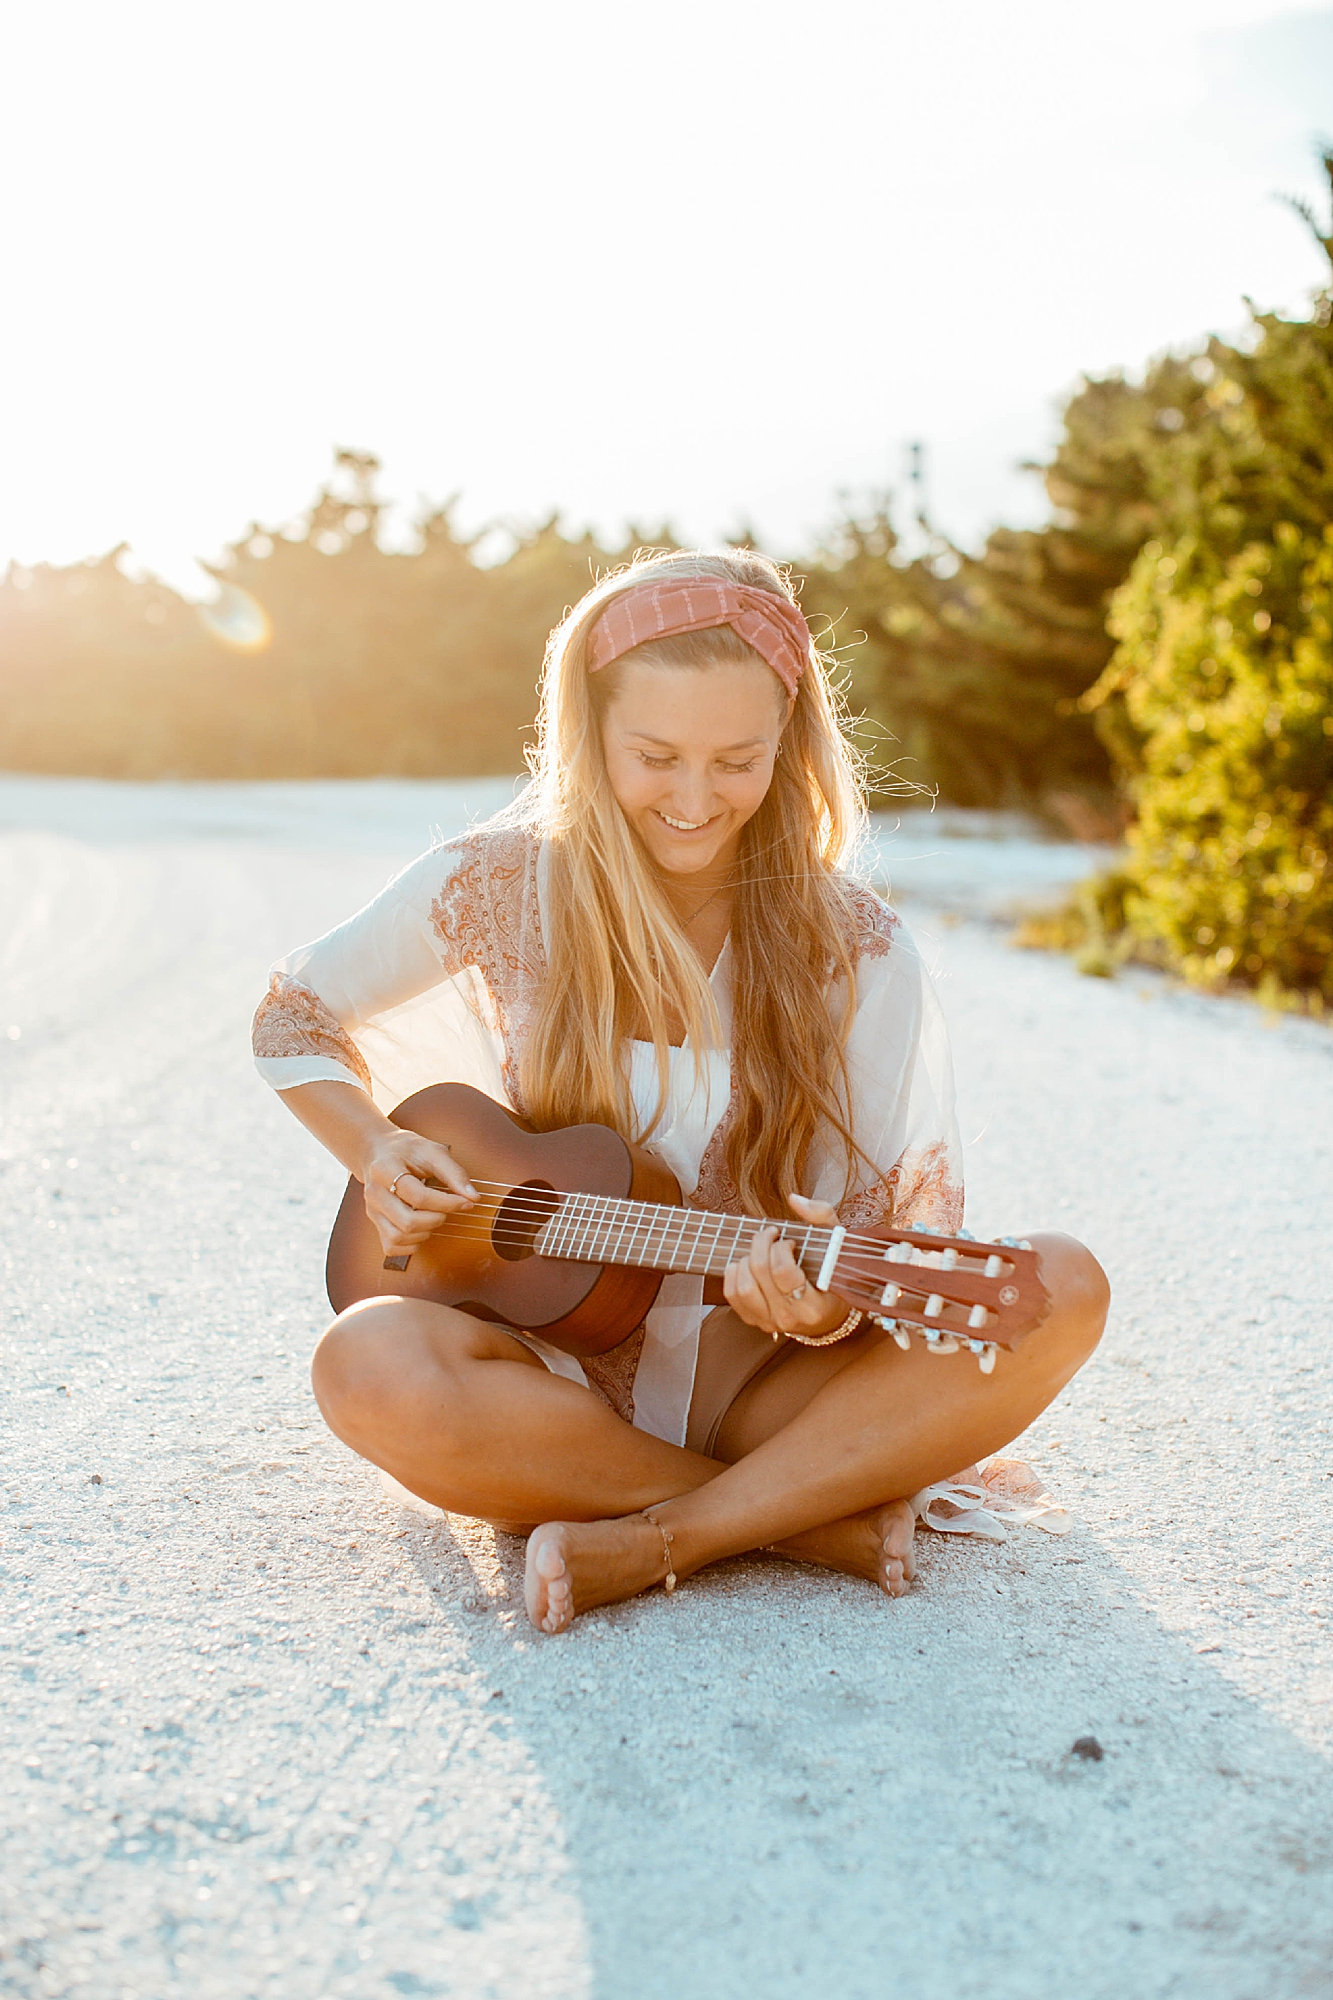 Natural and Bright Seaside Park New Jersey Boho Lifestlyle Beach Portrait Photography by Kelee Bovelle_0033.jpg